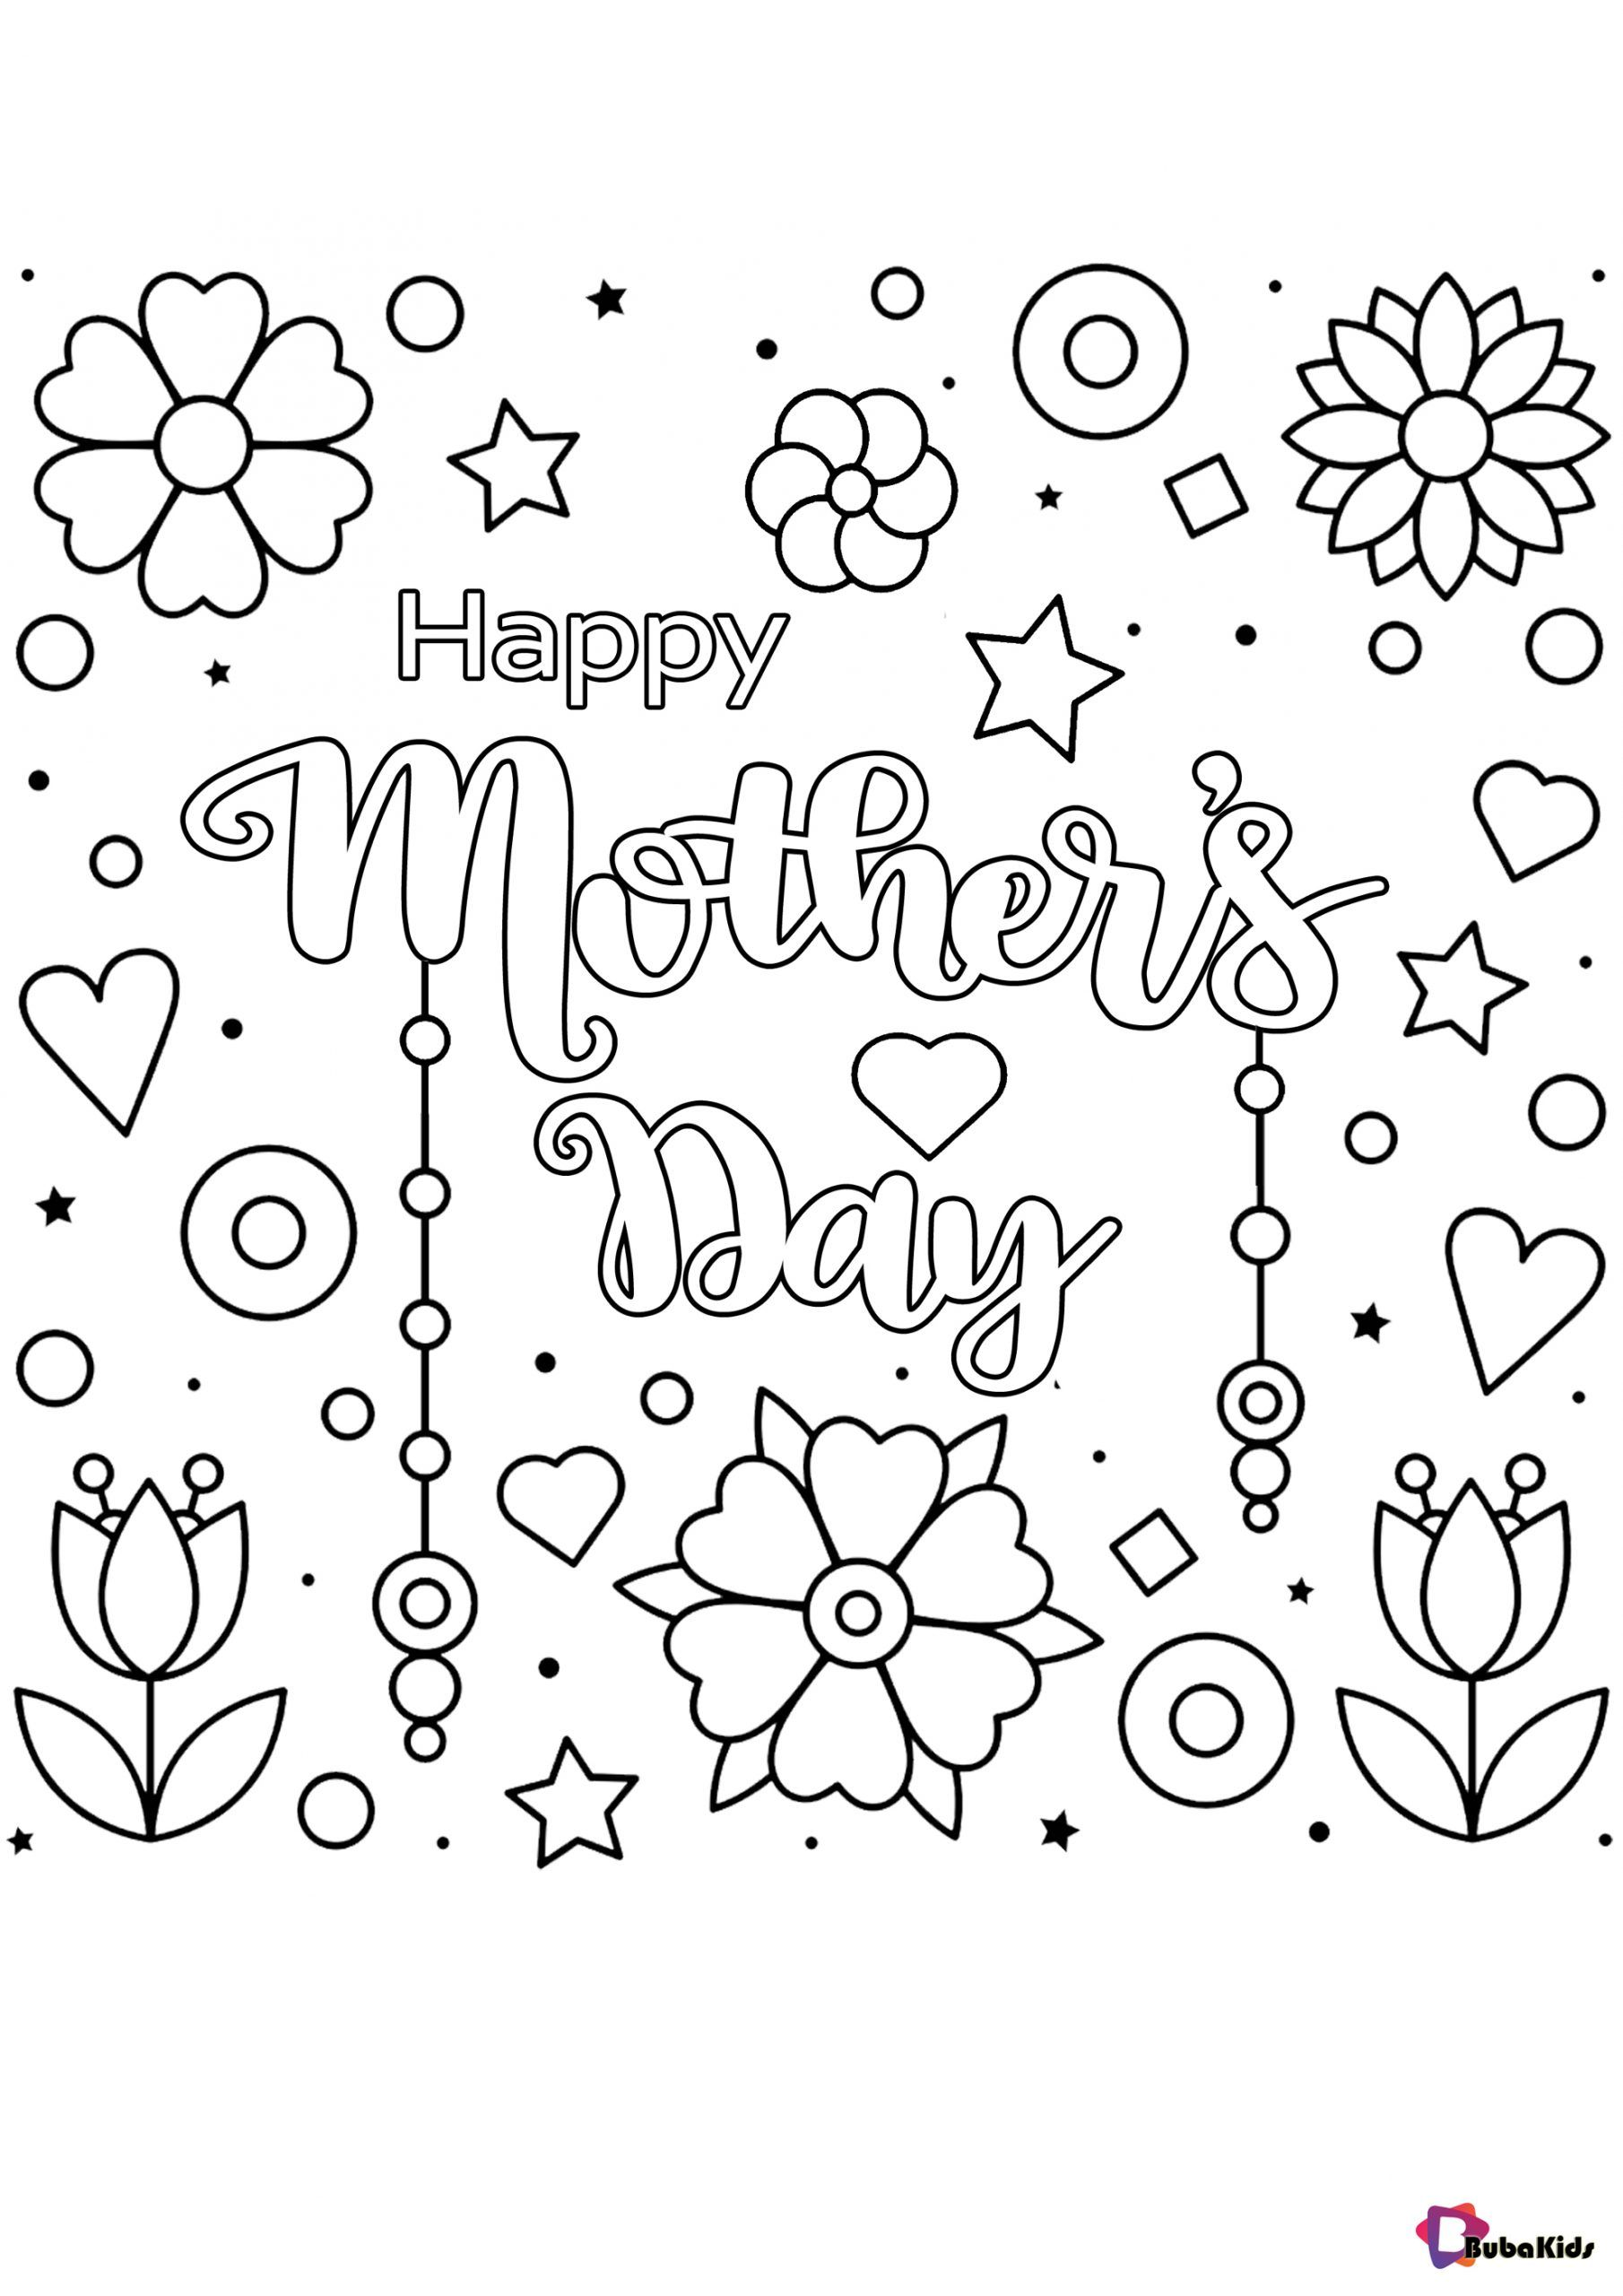 Free Download Mother S Day Coloring Pages Flowers Hearts Collection Of Cartoon Coloring Pages F Mothers Day Coloring Pages Heart Coloring Pages Coloring Pages